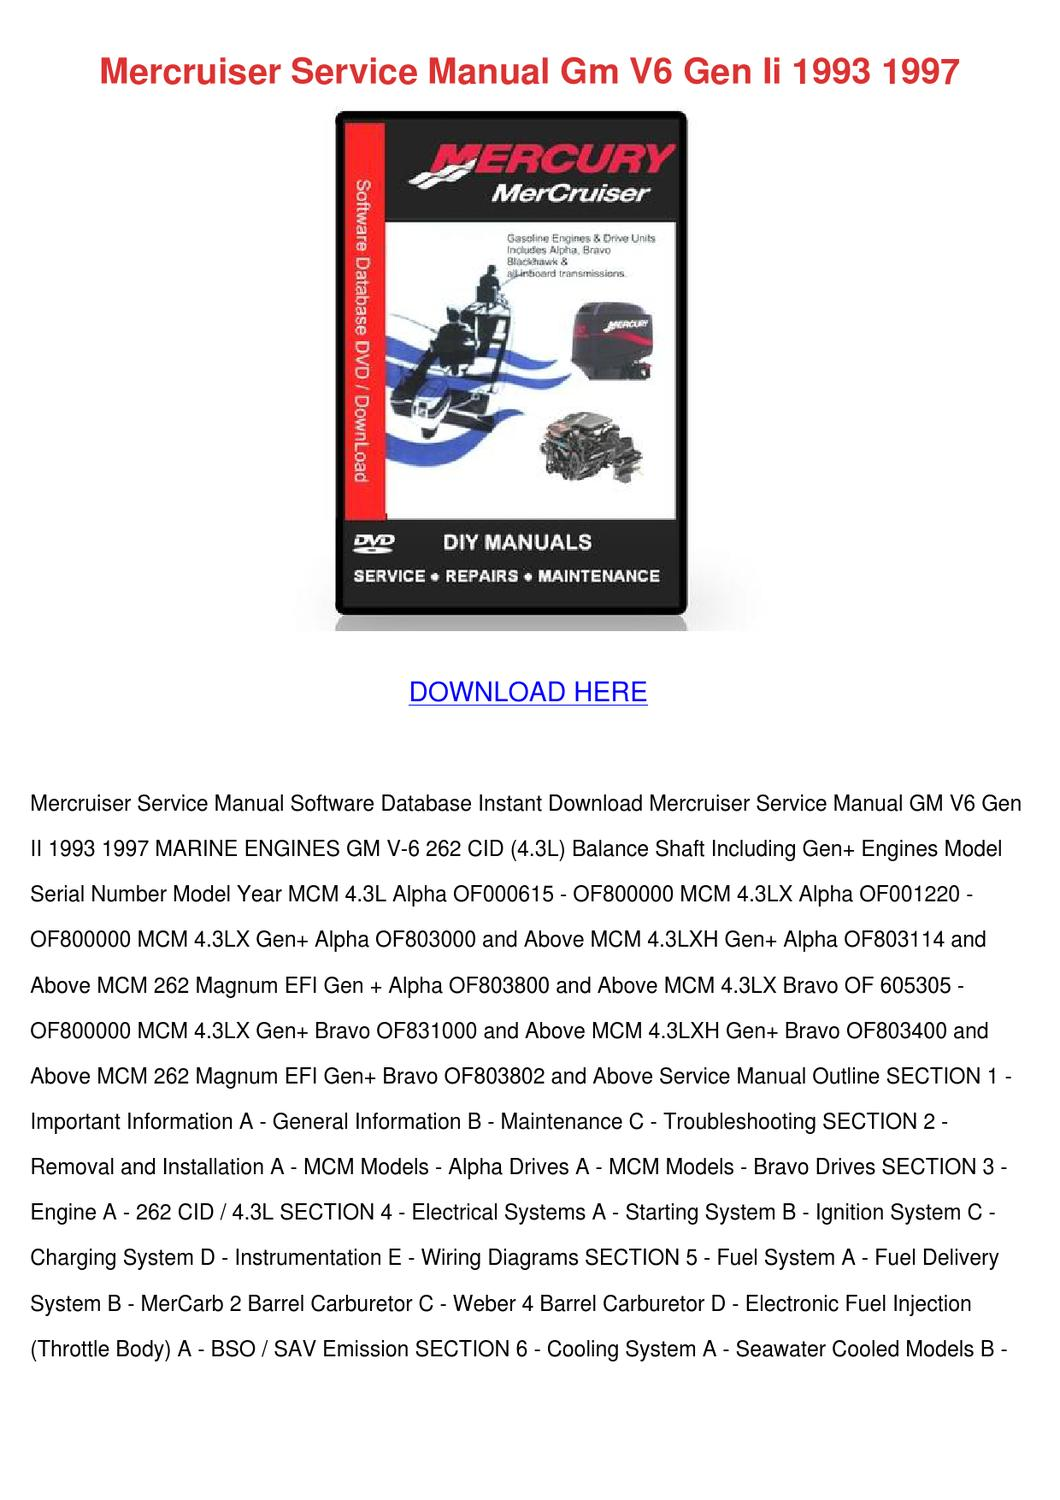 mercruiser service manual gm v6 gen ii 1993 1 by juliusheim issuu